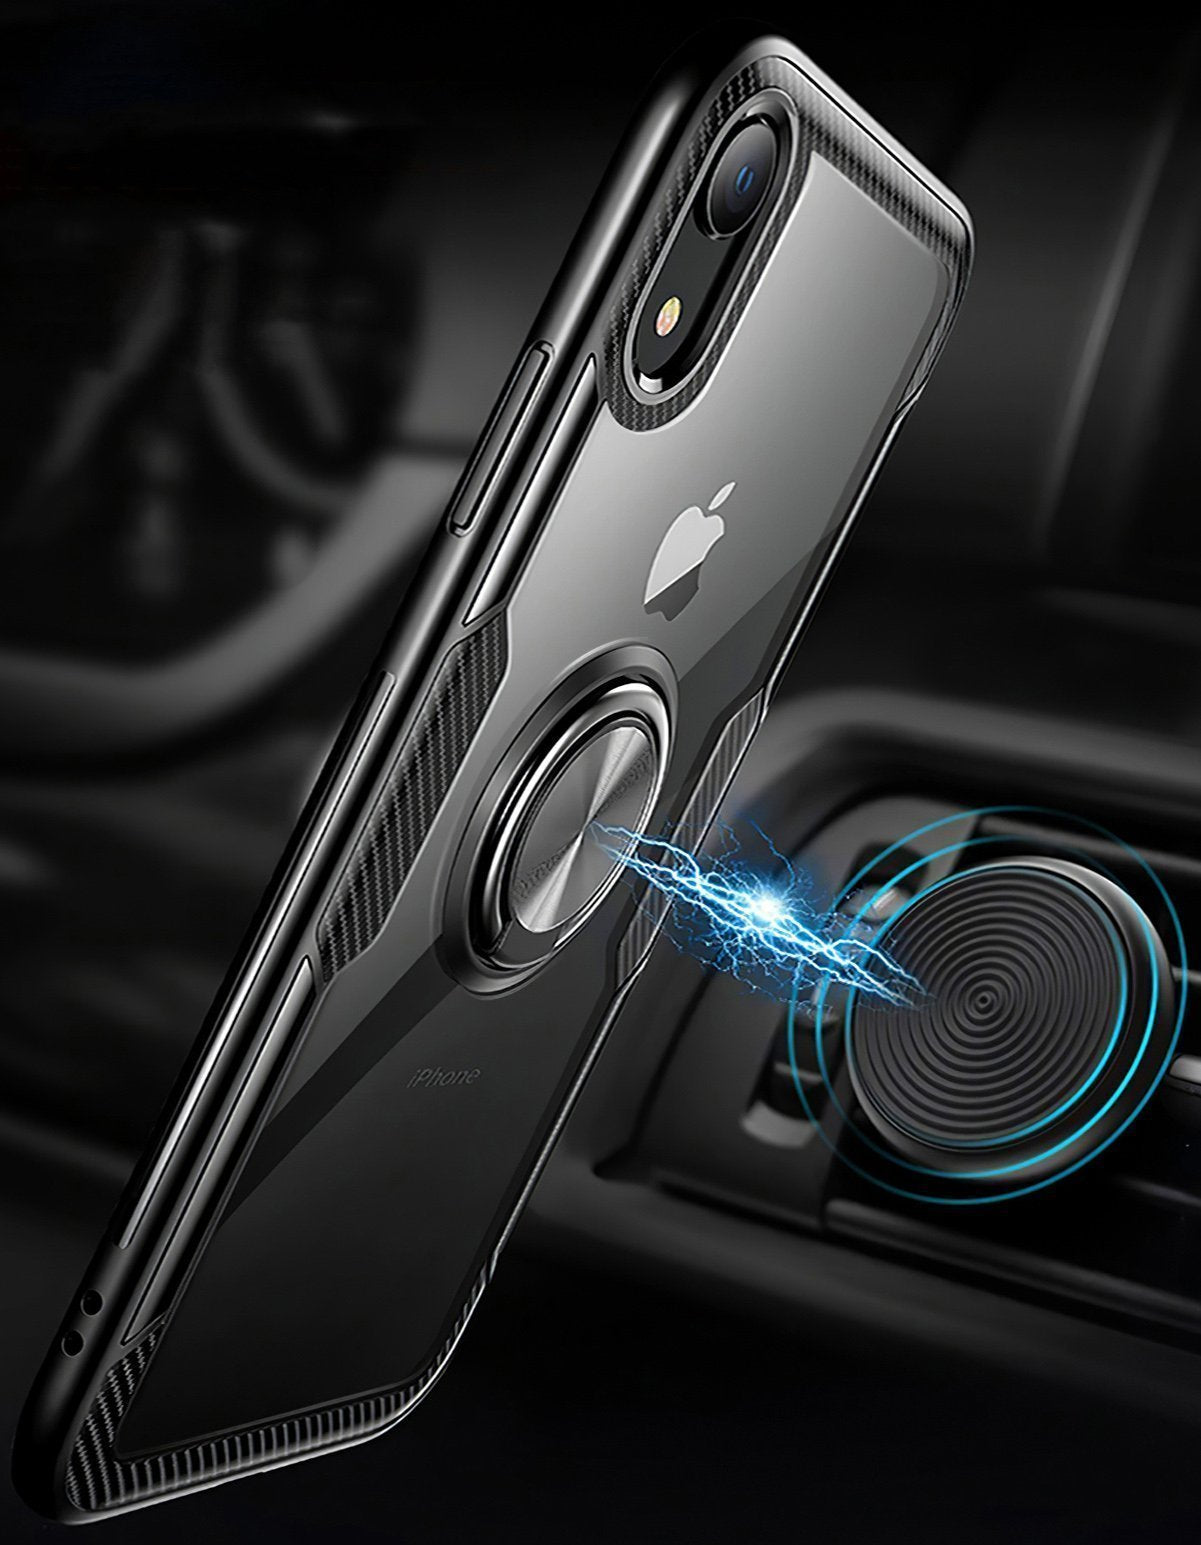 ULTRA THIN 4 in 1 Premium Nanotech Impact Case - Best iPhone Cases